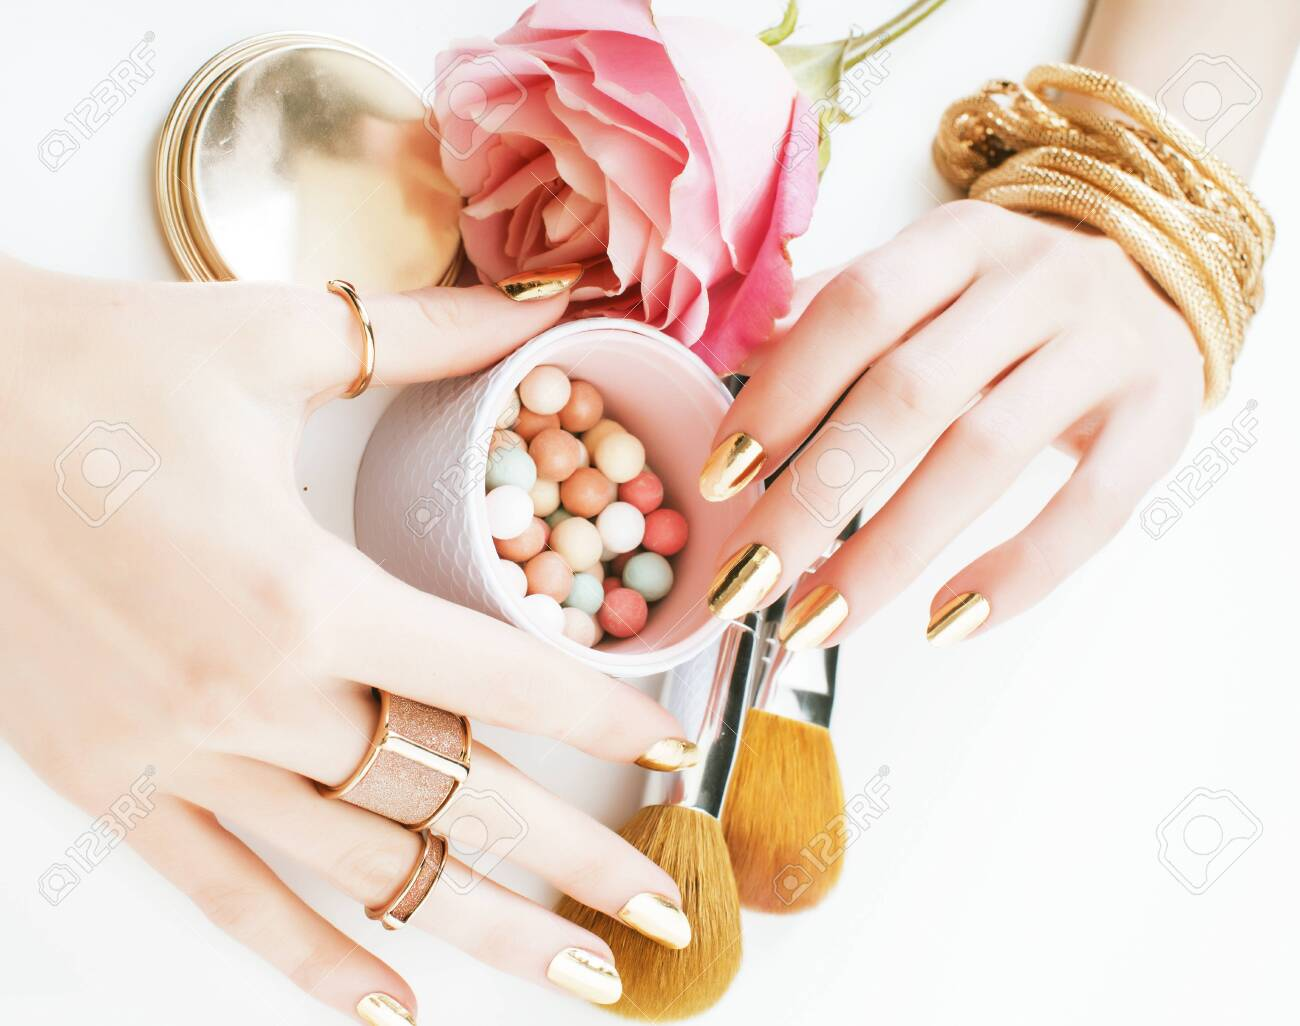 woman hands with golden manicure and many rings holding brushes, makeup artist stuff stylish, pure close up pink flower rose among cosmetic for makeup - 143450788